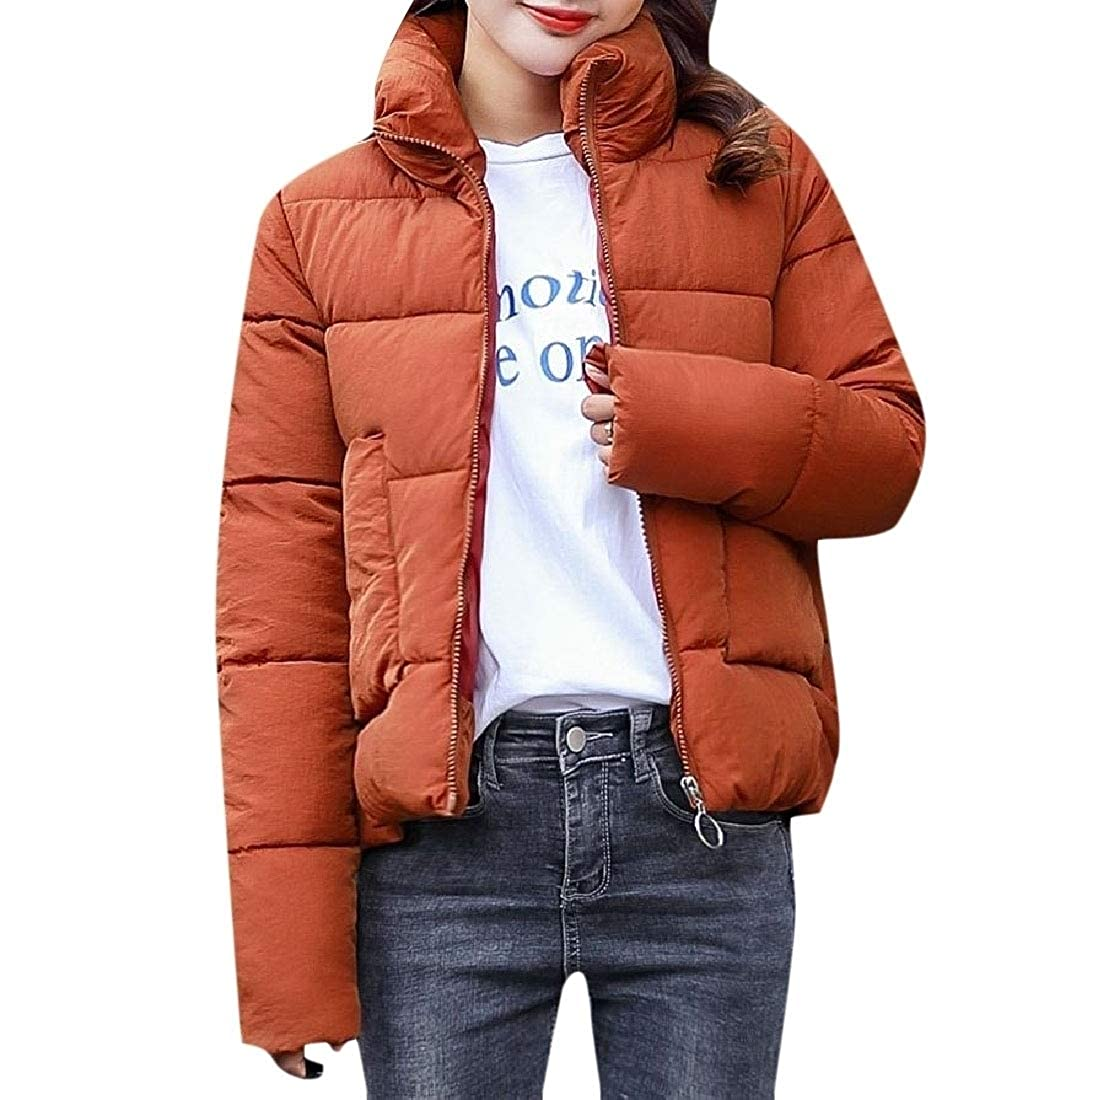 YUNY Women Down Solid Color Stand Collar Outwear Casual Puffer Jacket Caramel L